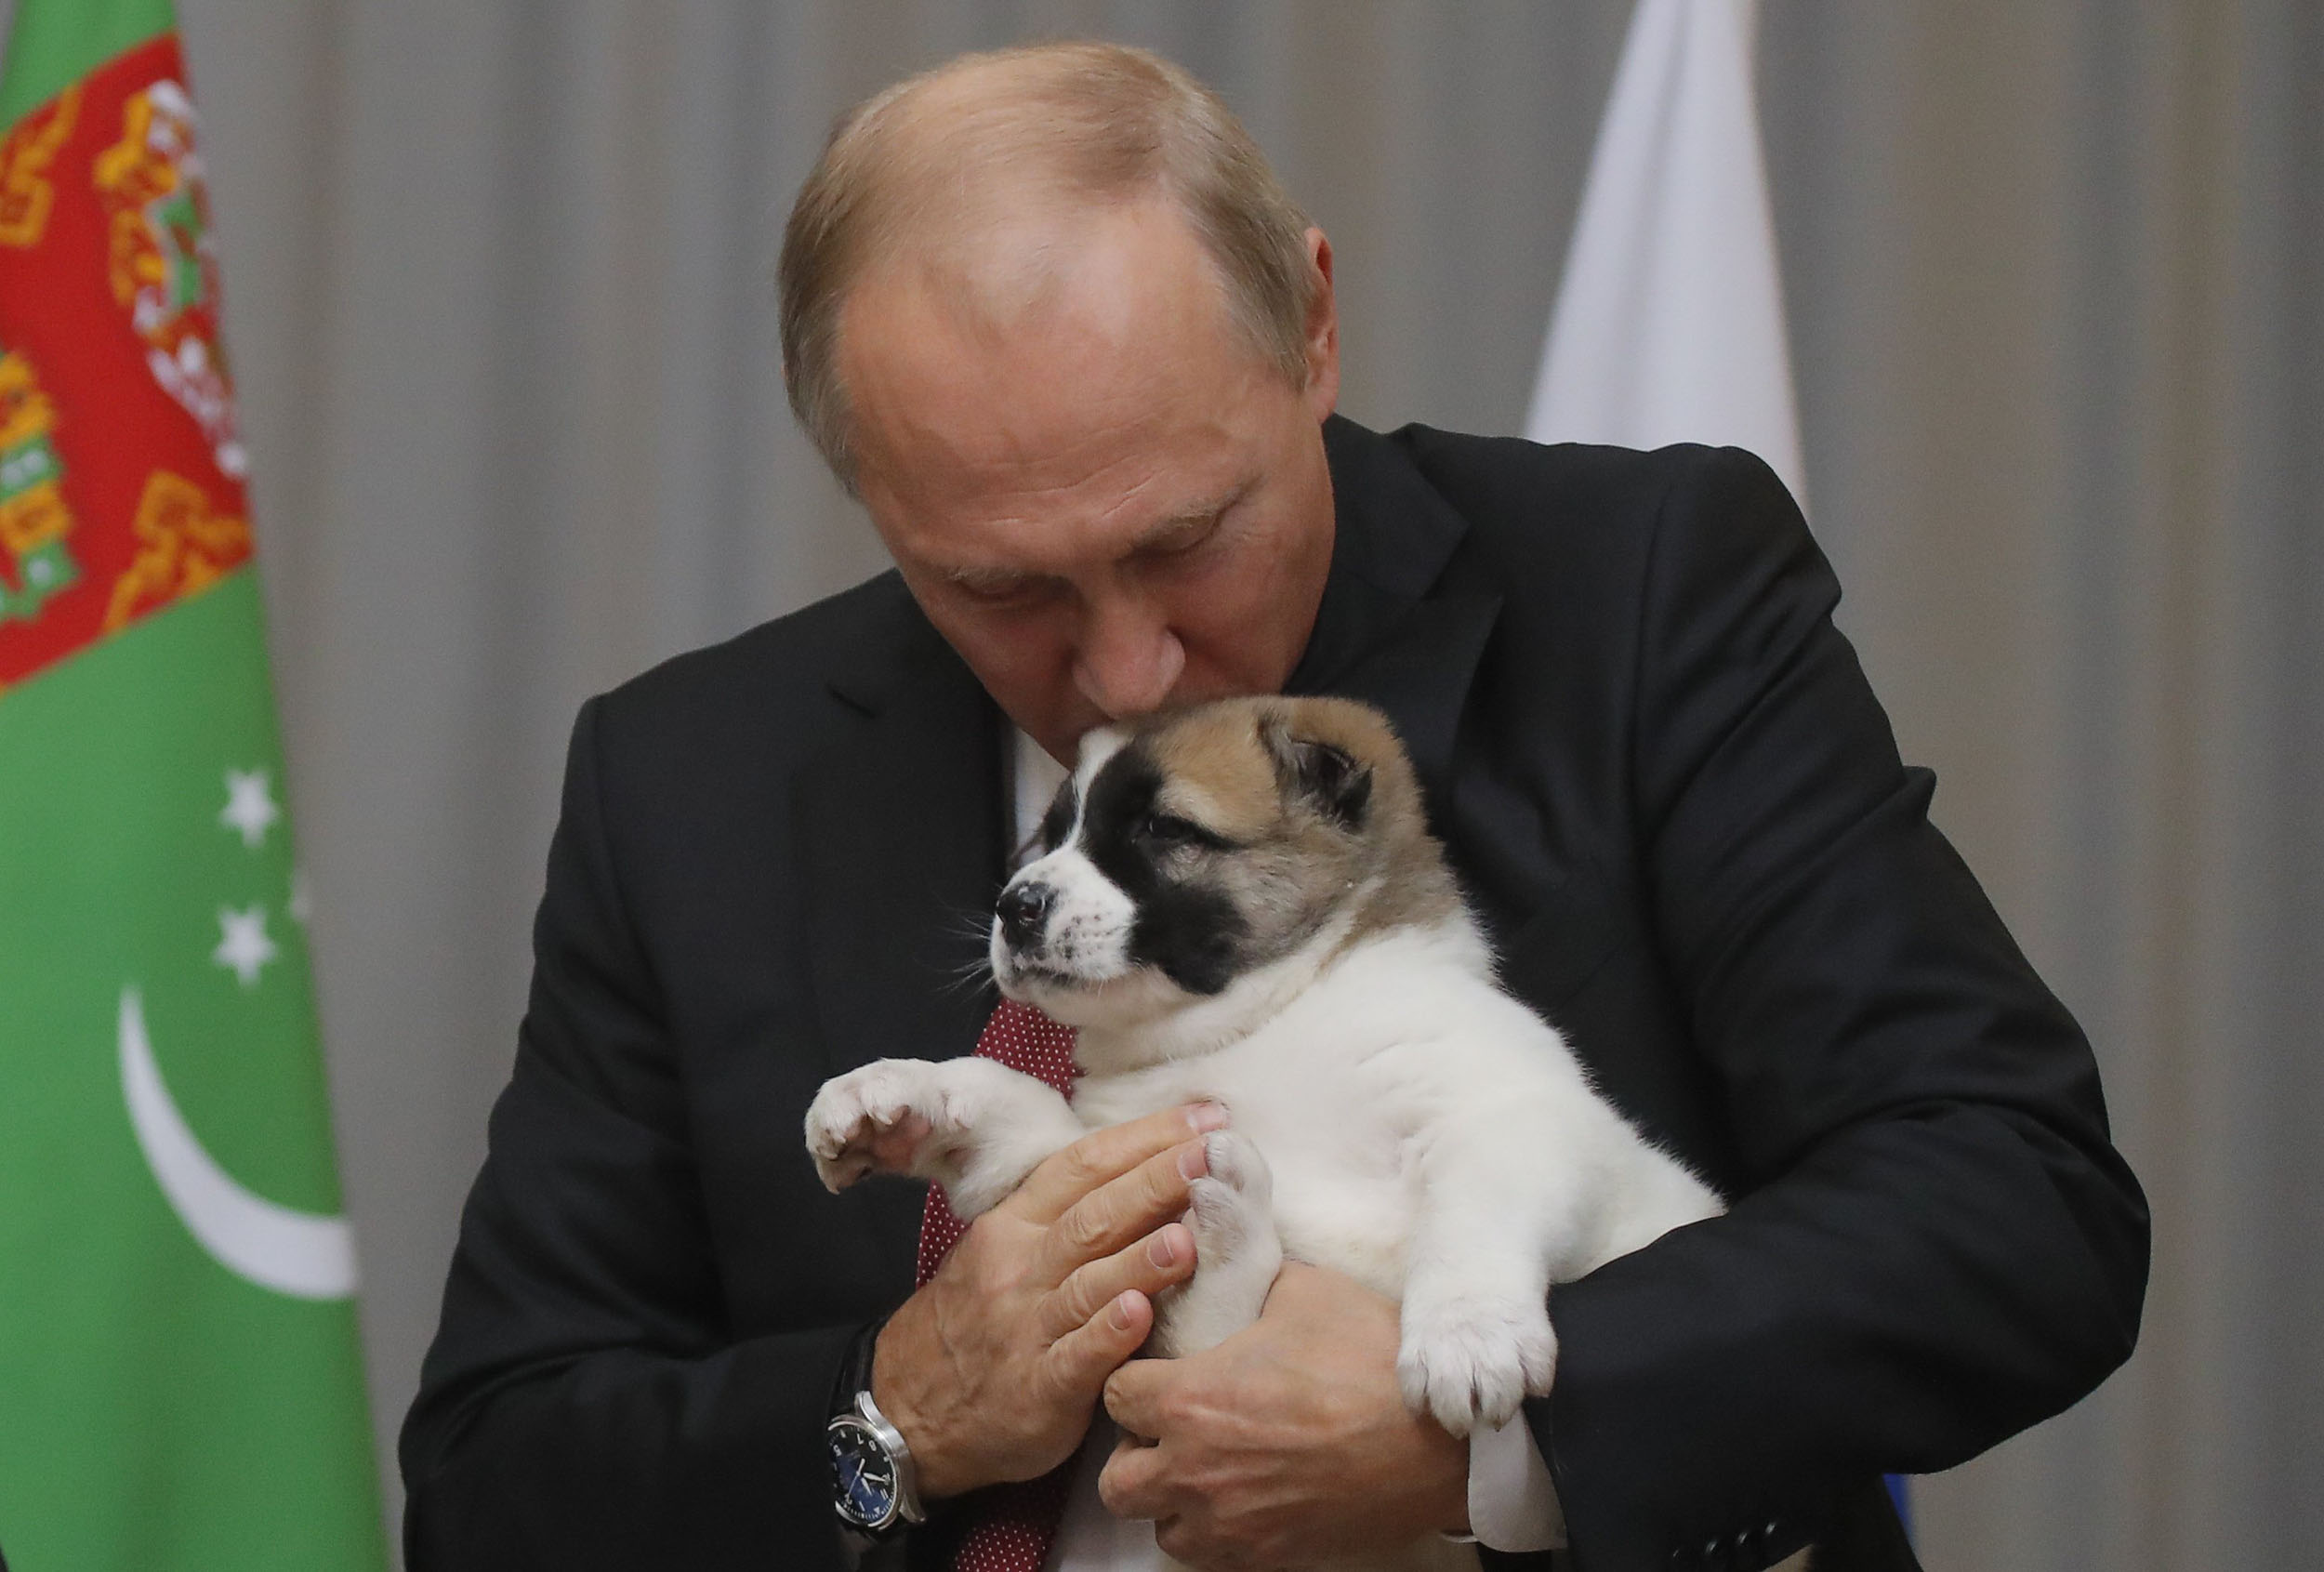 Doggy Diplomacy: Putin Gets Cute Puppy for His 65th Birthday